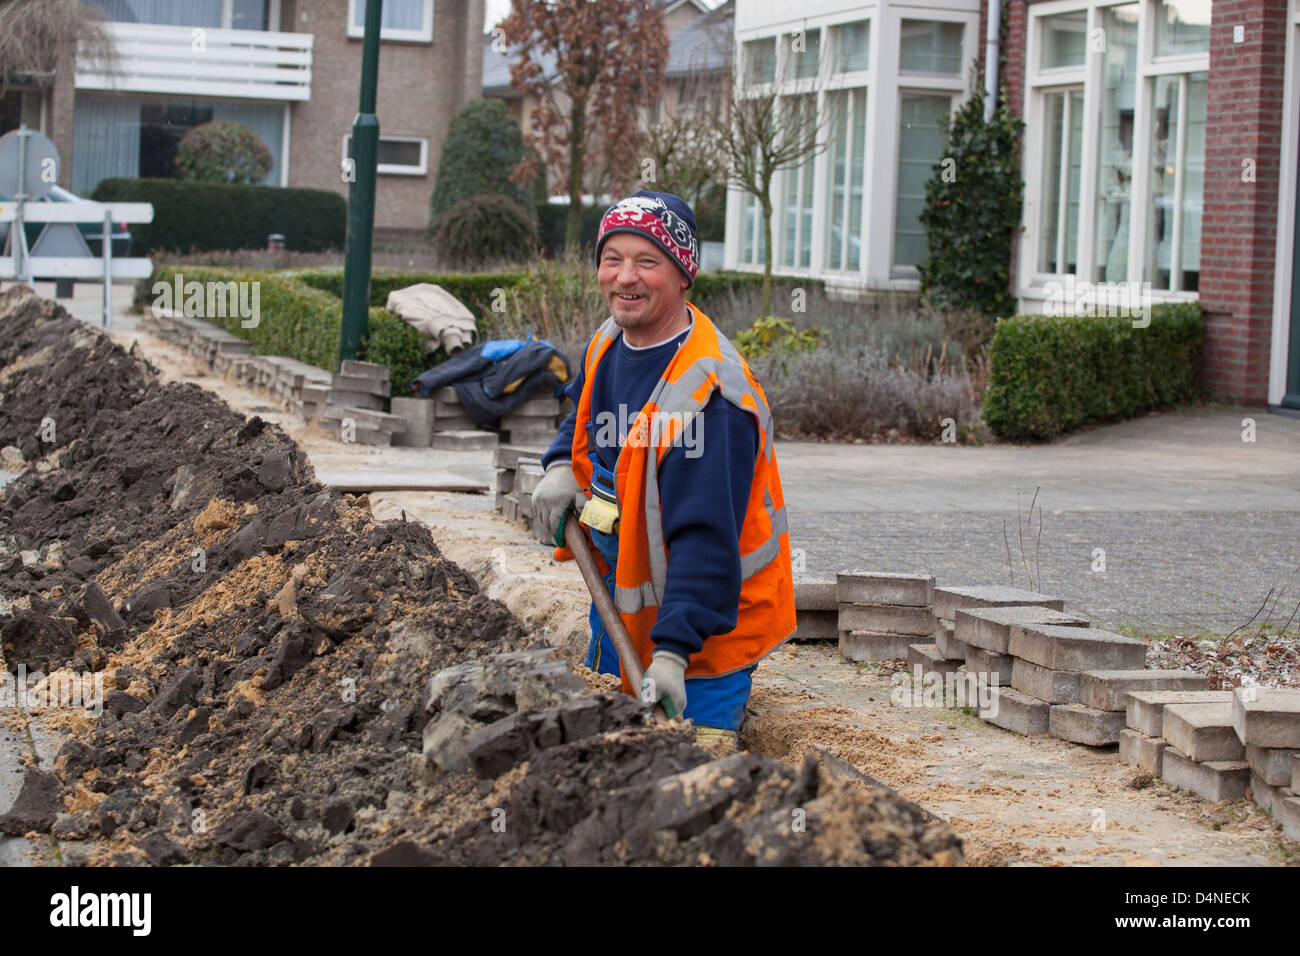 Hungarian migrant worker digging for the construction of a glass fiber network in the Netherlands. Stock Photo